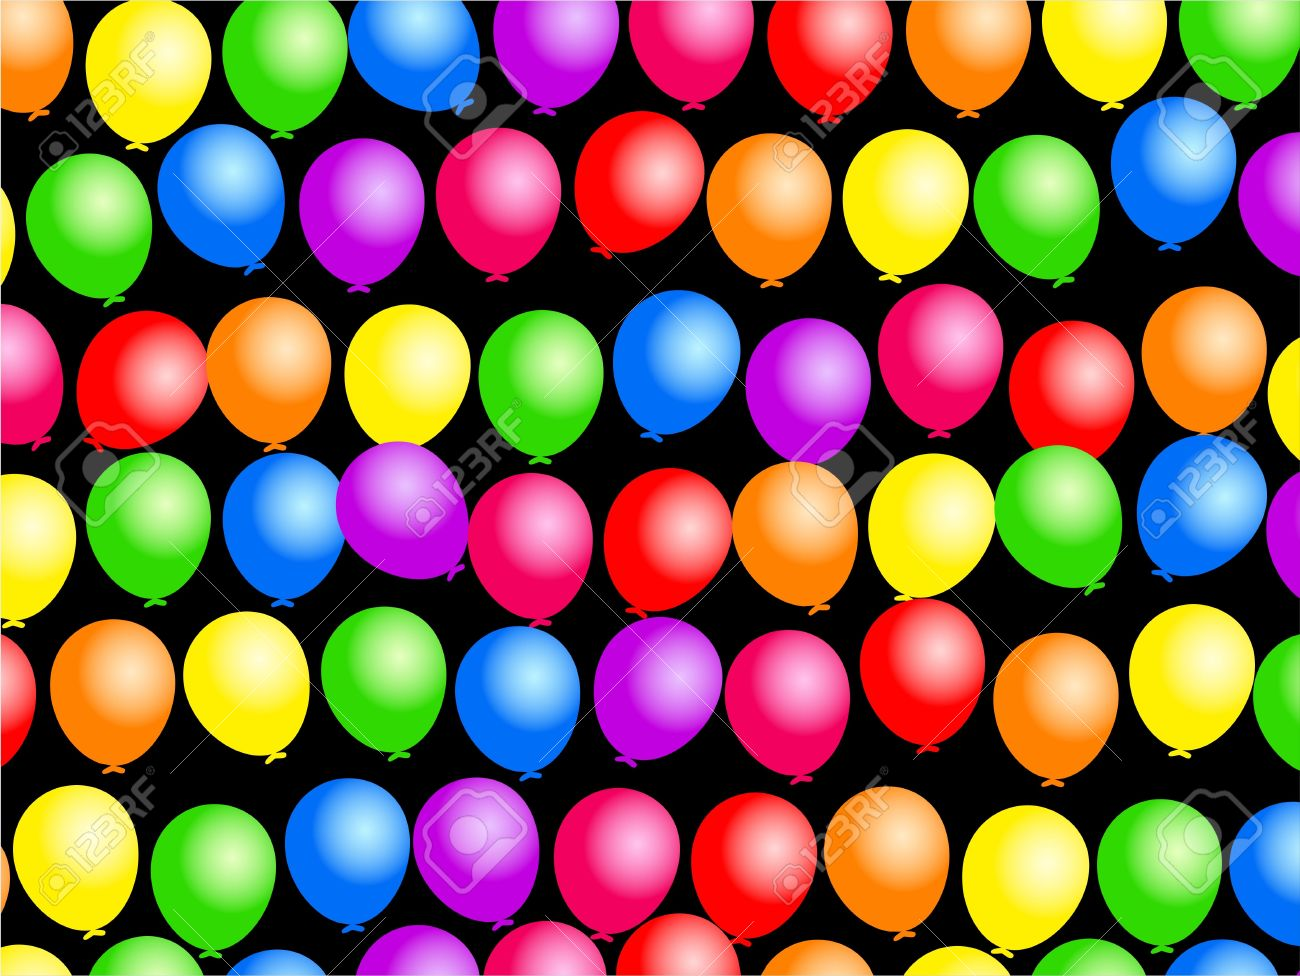 Colourful birthday party balloon wallpaper background design. Stock Photo - 4592709